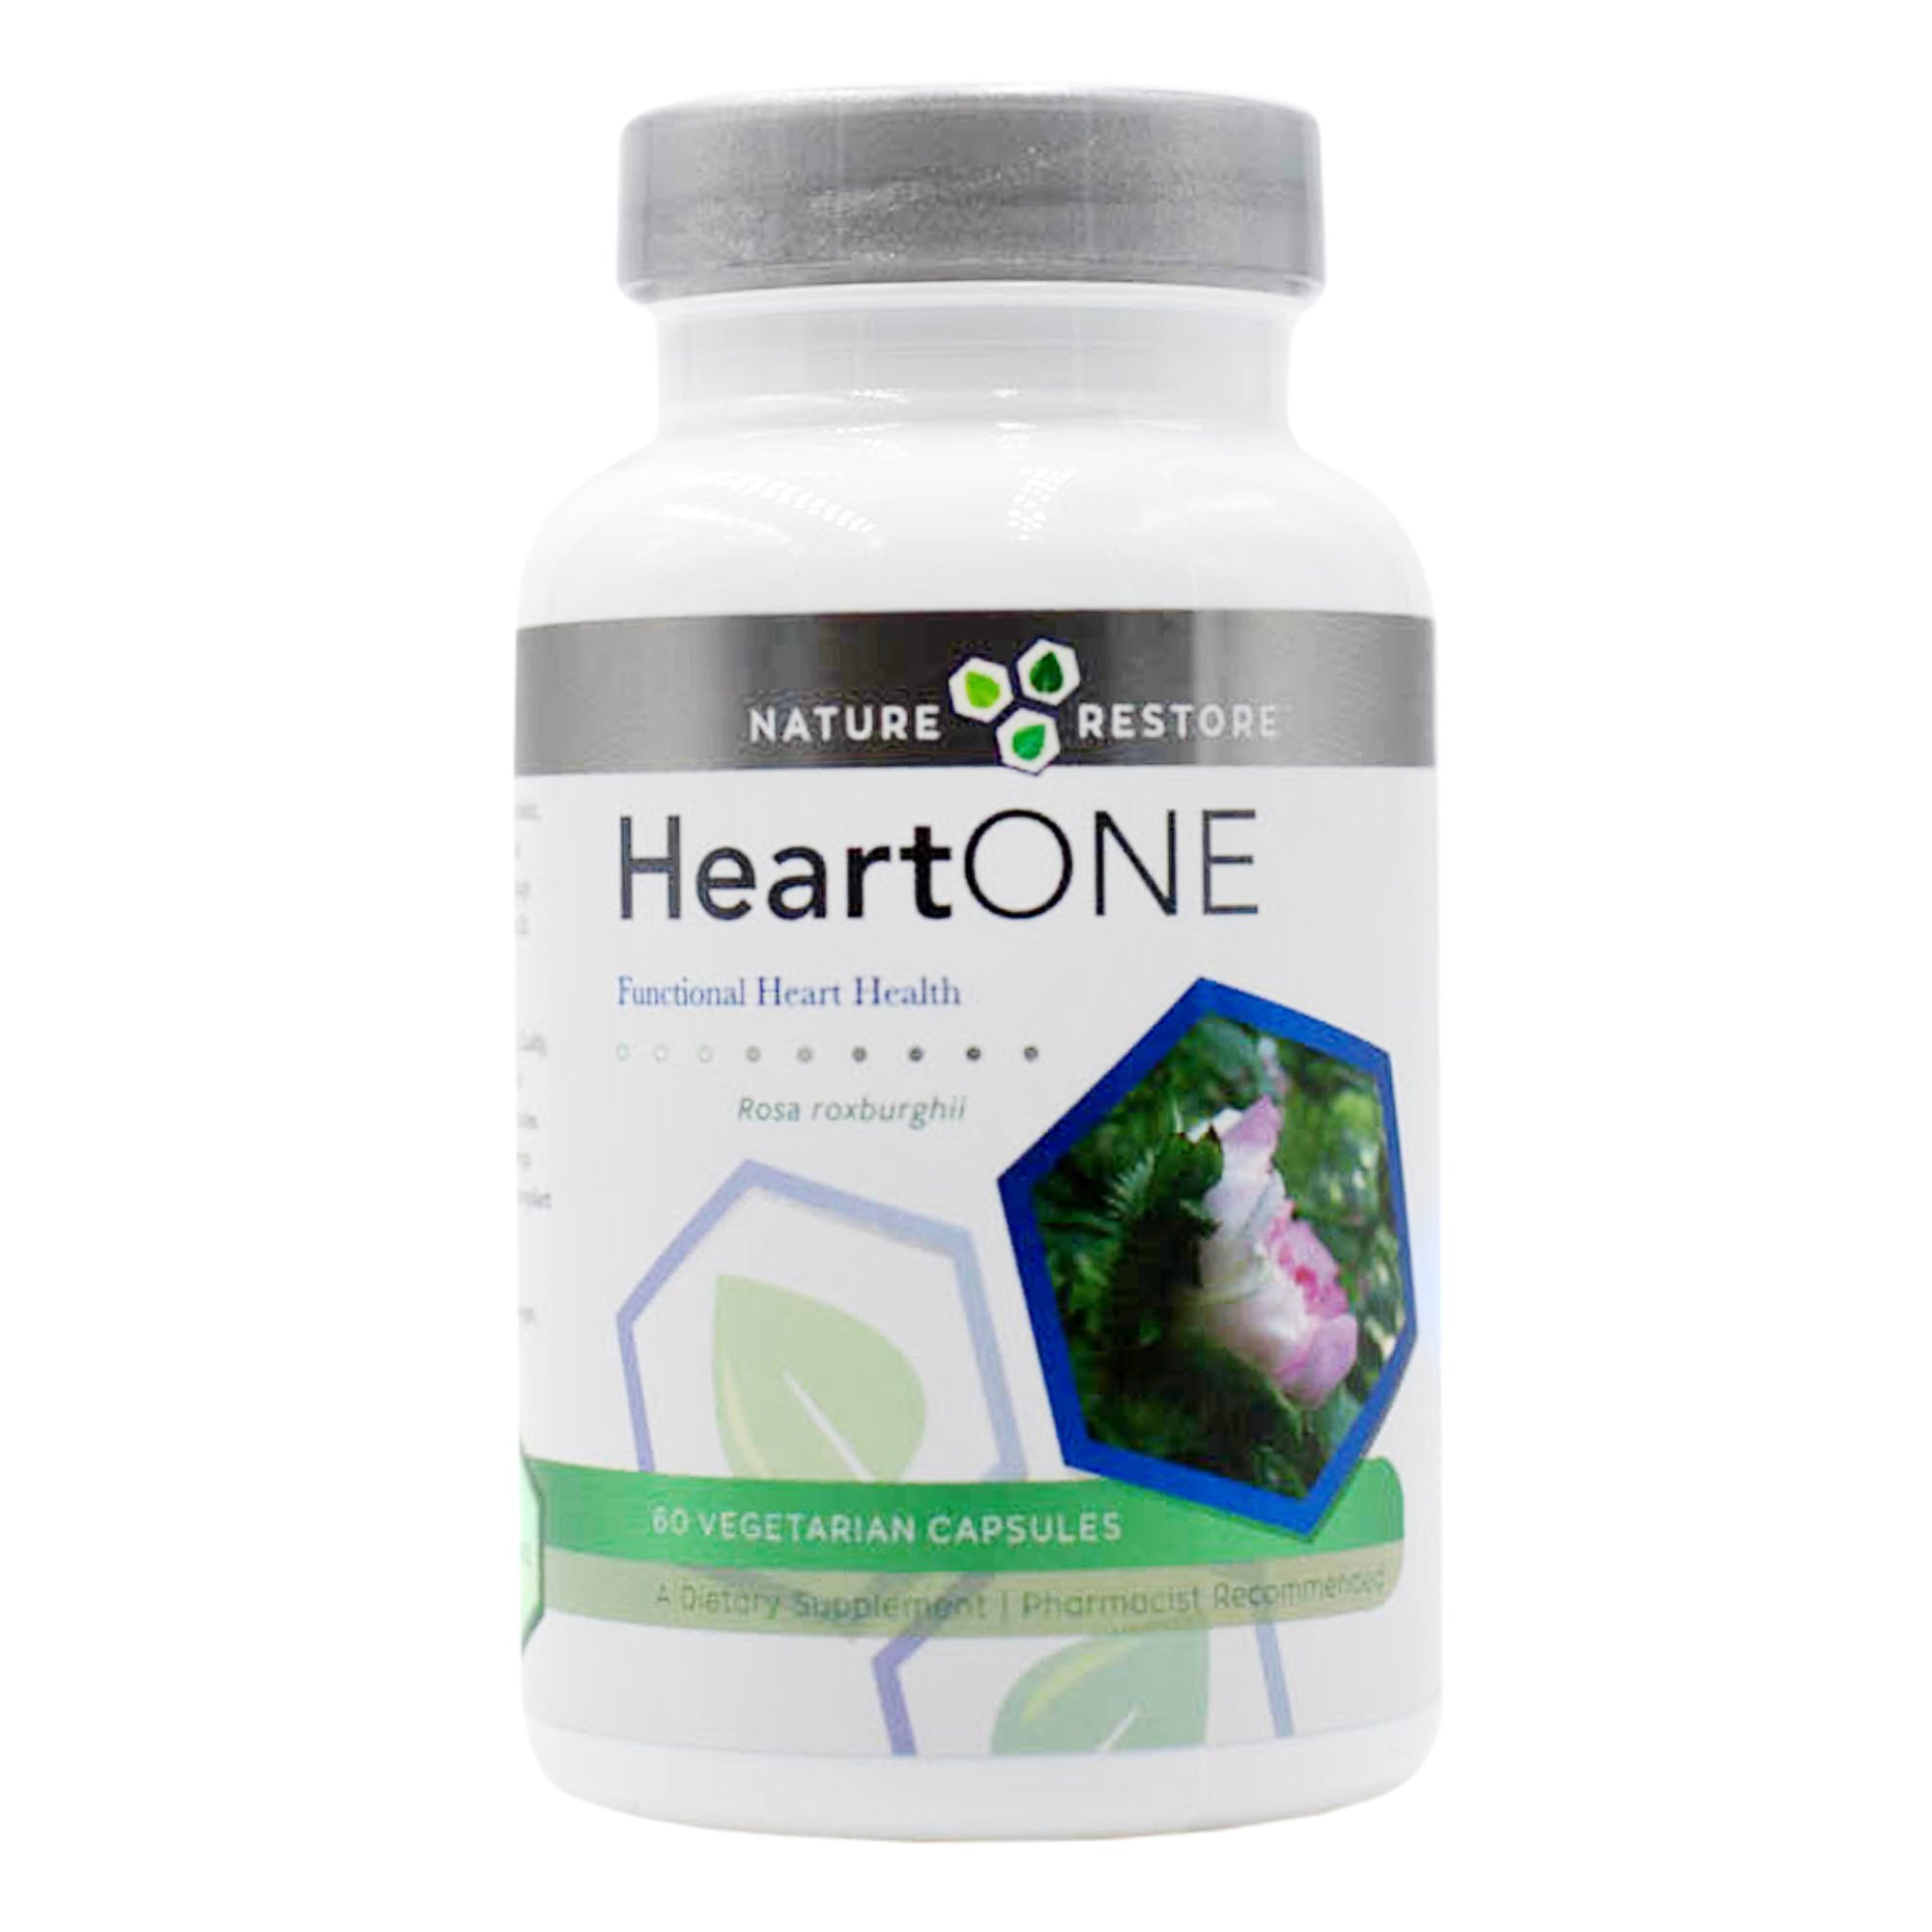 HeartOne, Heart Health Supplement for Treating High LDL Cholesterol and High Tryglycerides and Supporting Better HDL Cholesterol, 60 Vegan Capsules, Non GMO, Gluten Free by Nature Restore